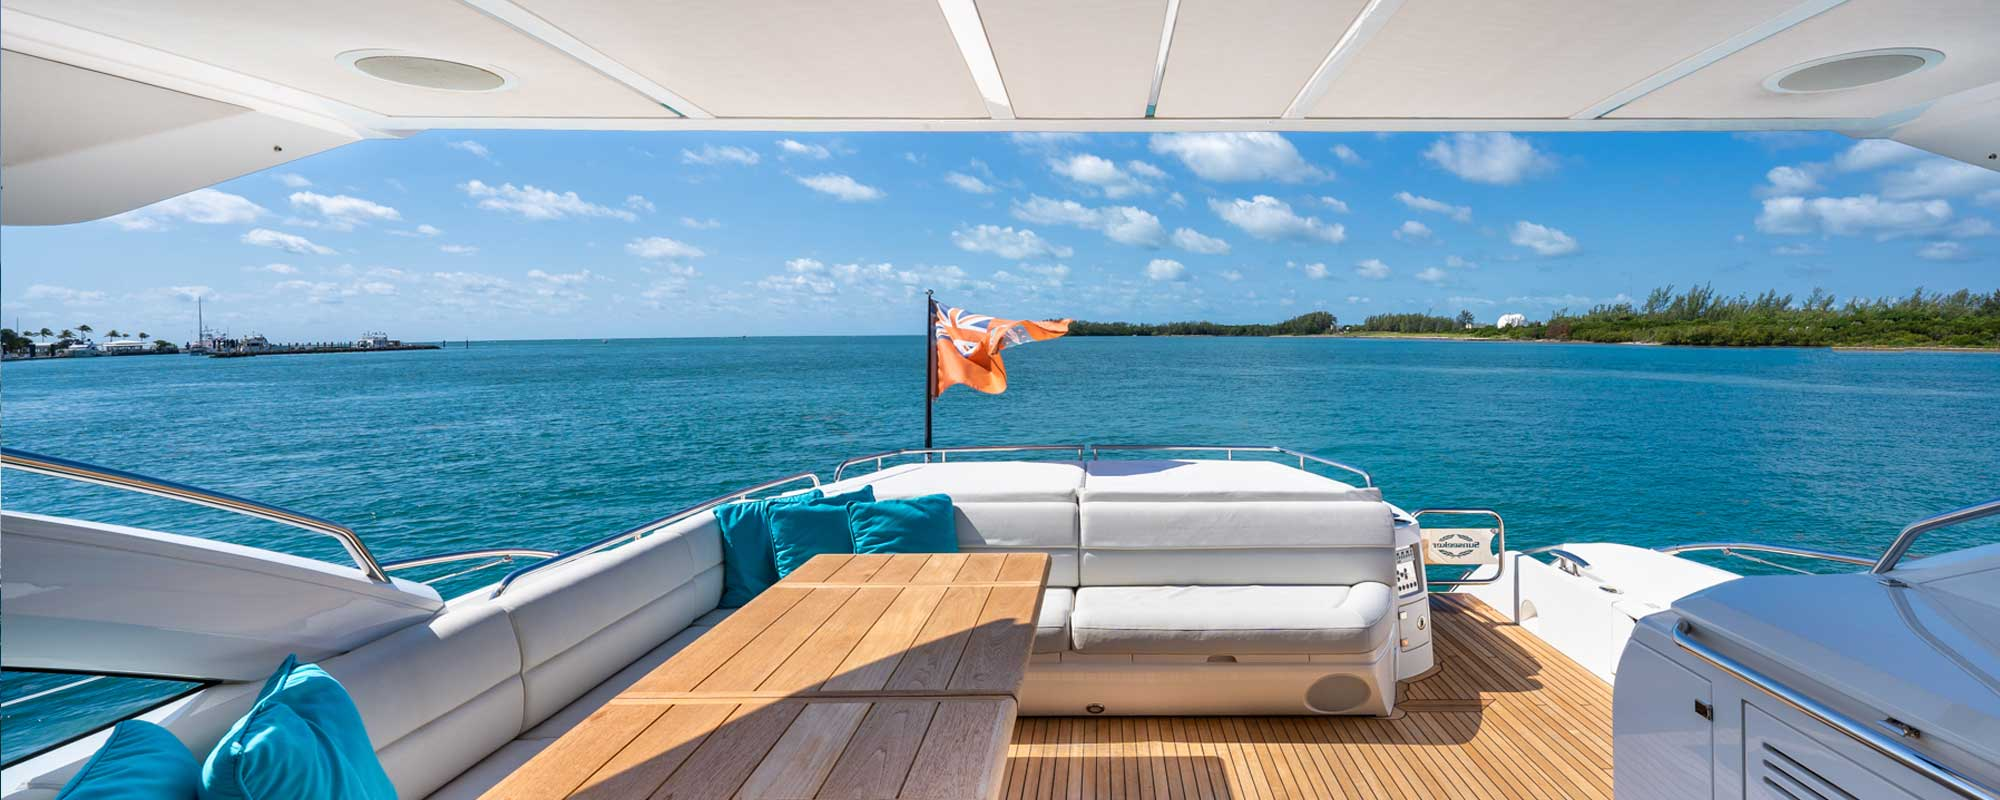 View from yacht